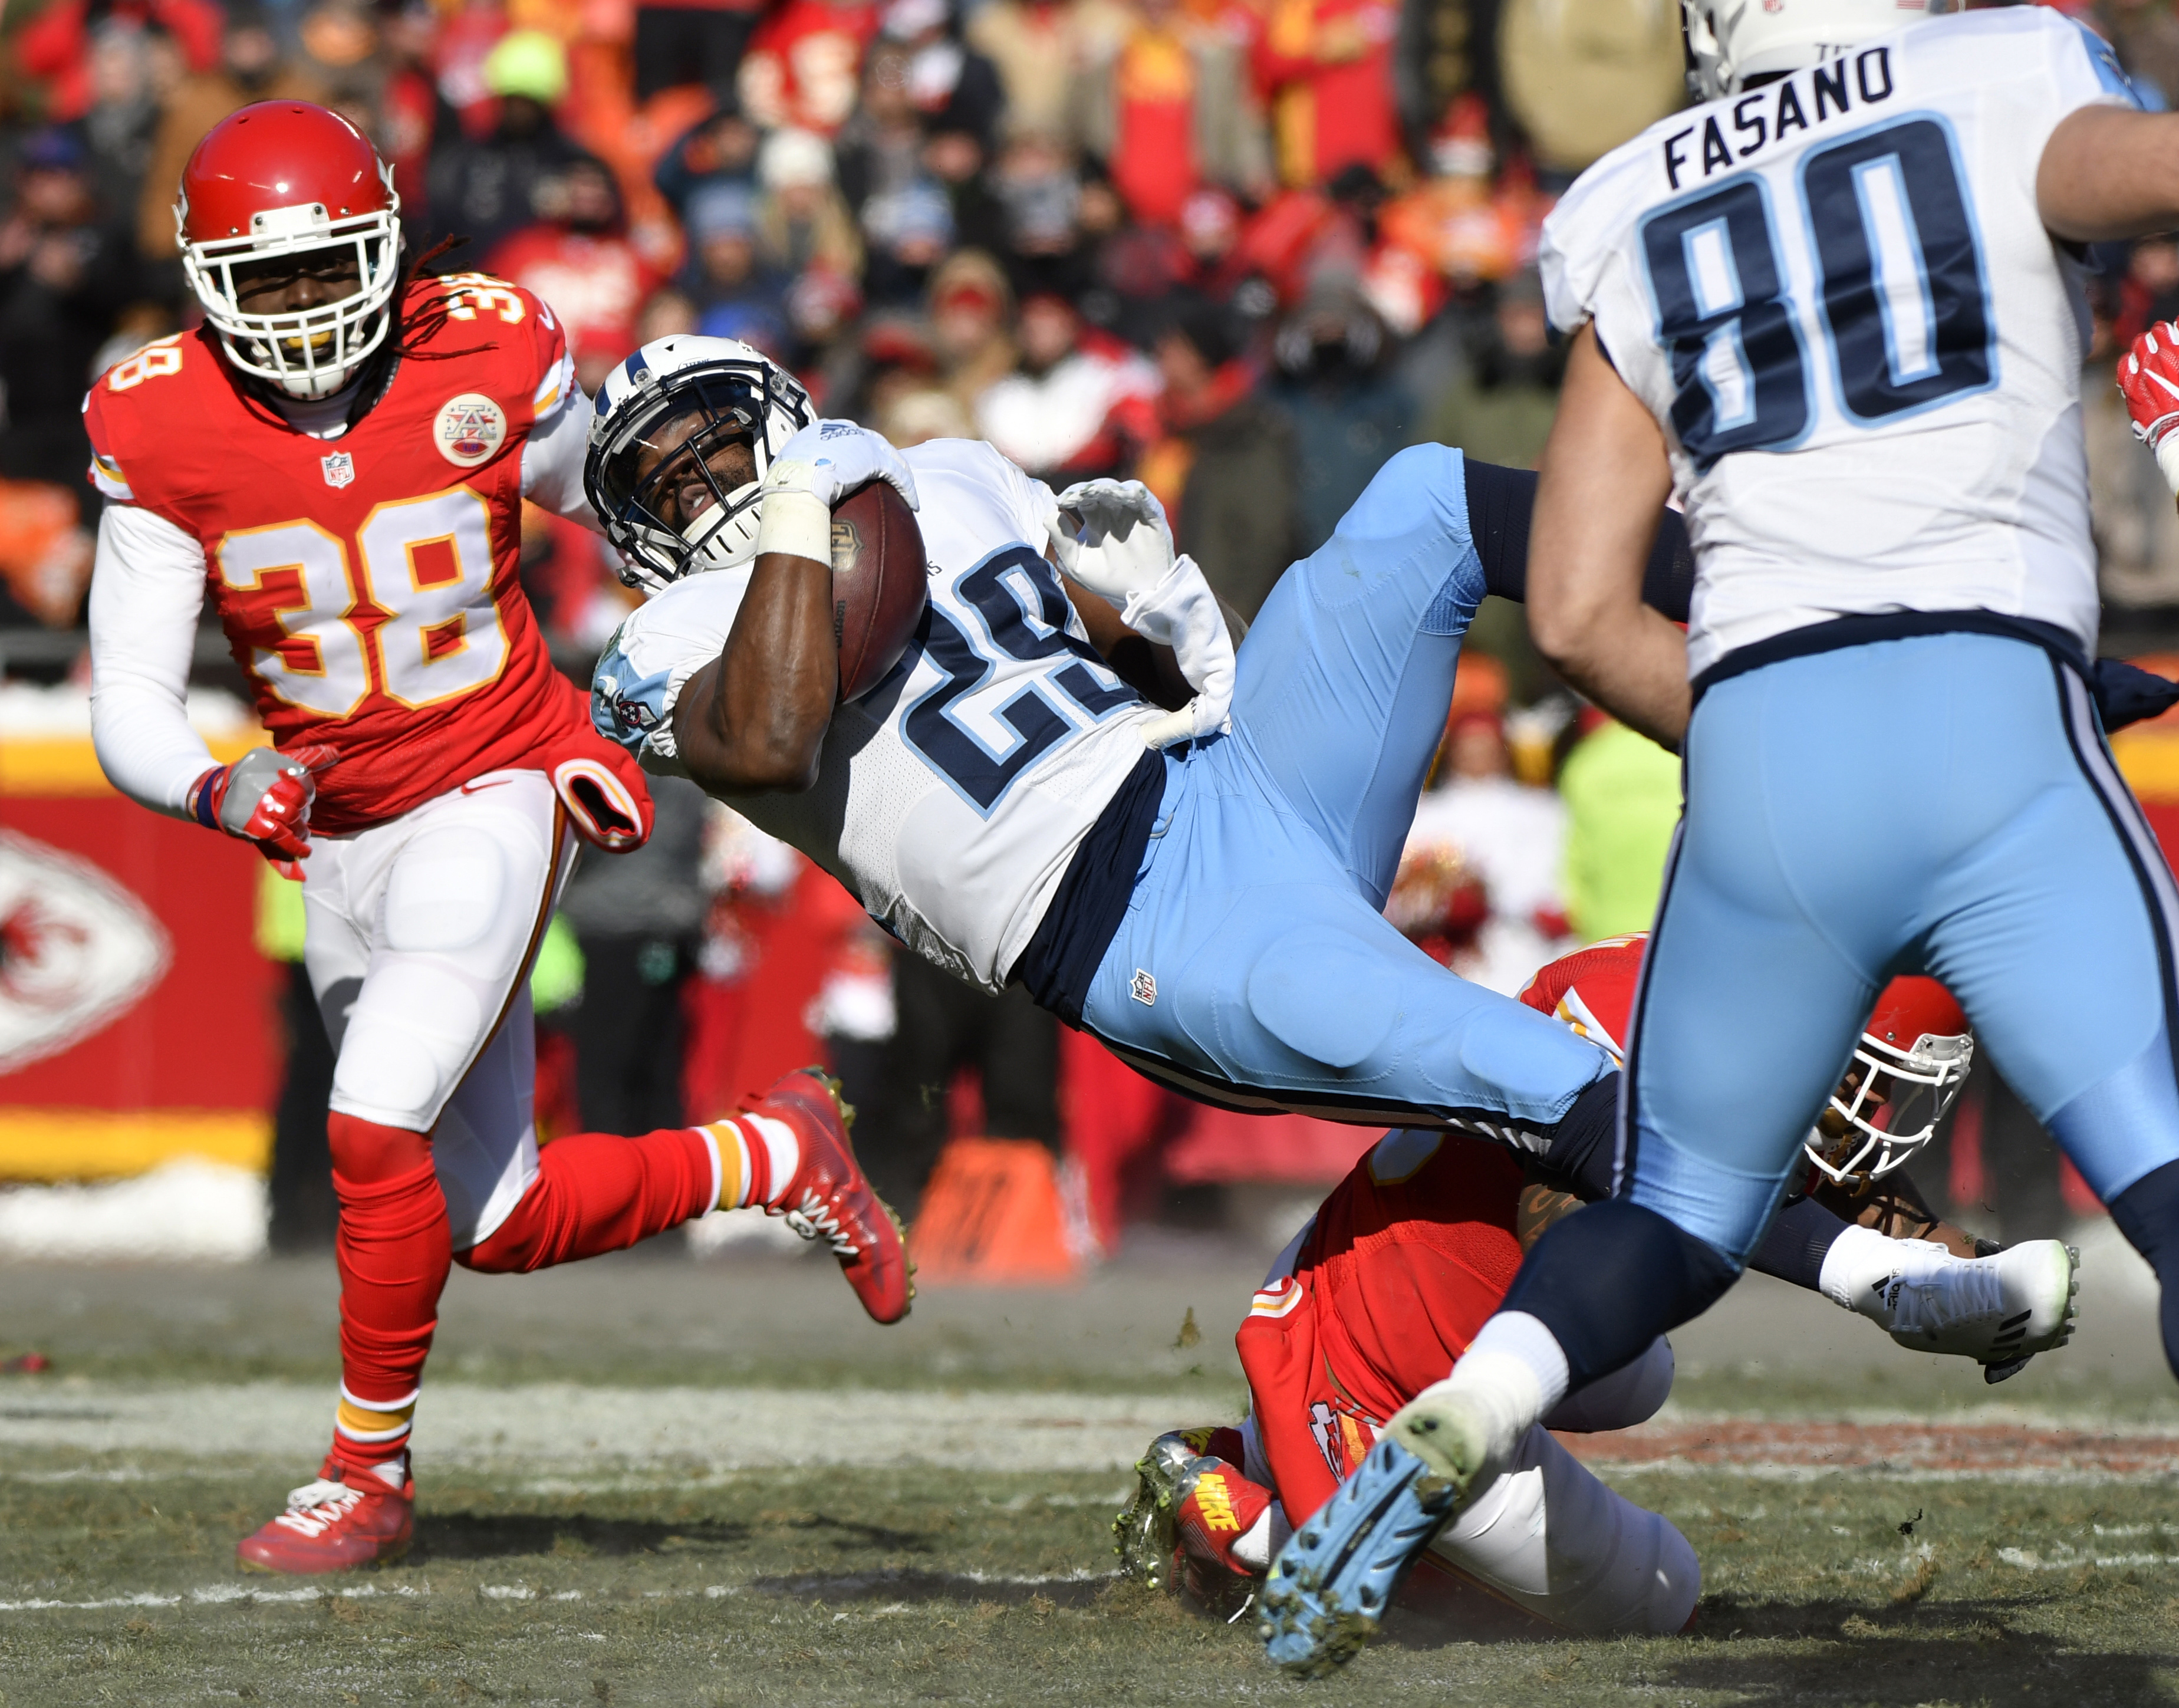 FILE - In a Sunday, Dec. 18, 2016 file photo, Tennessee Titans running back DeMarco Murray (29) is tackled by Kansas City Chiefs defensive back Steven Nelson, right rear, during the first half of an NFL football game in Kansas City, Mo. Murray has a chanc